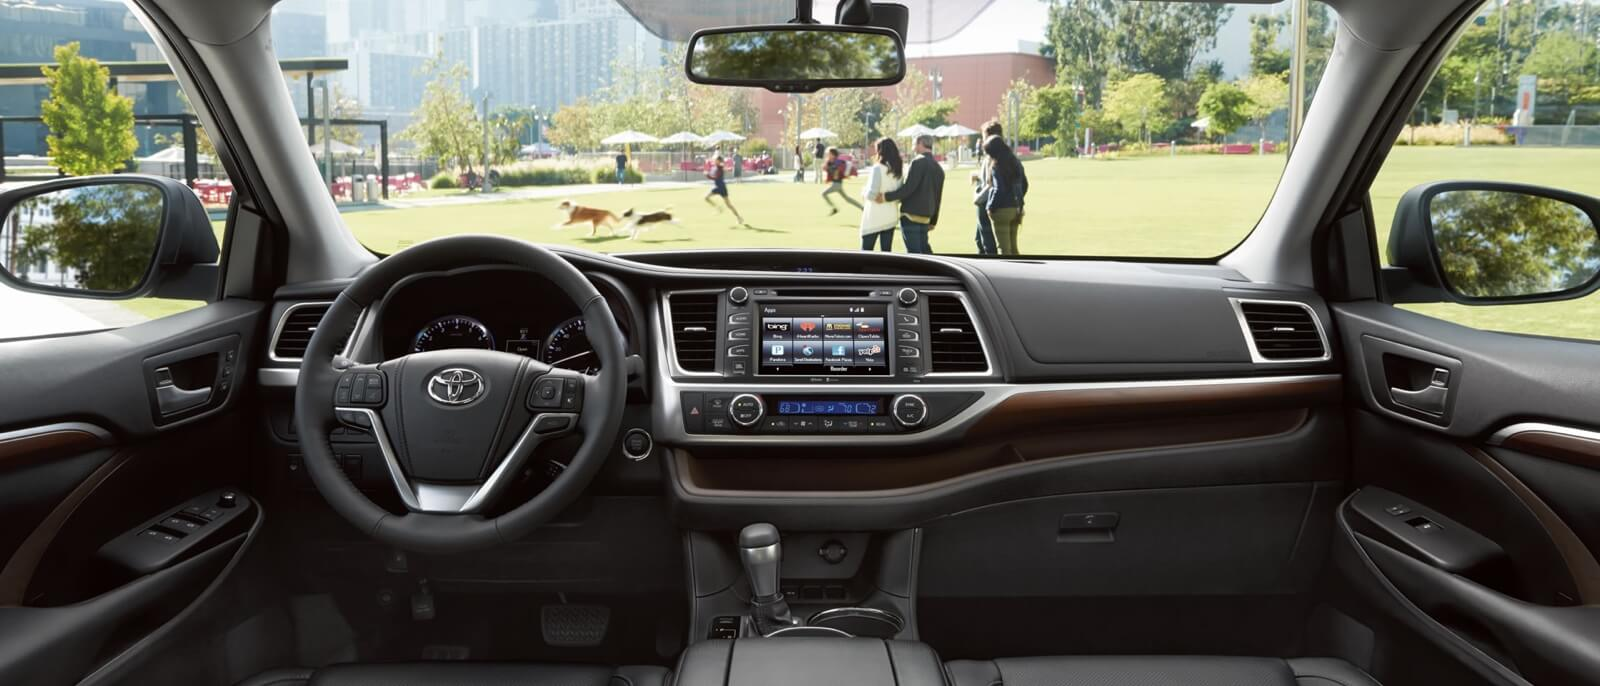 ... 2015 Toyota Highlander Interior ...